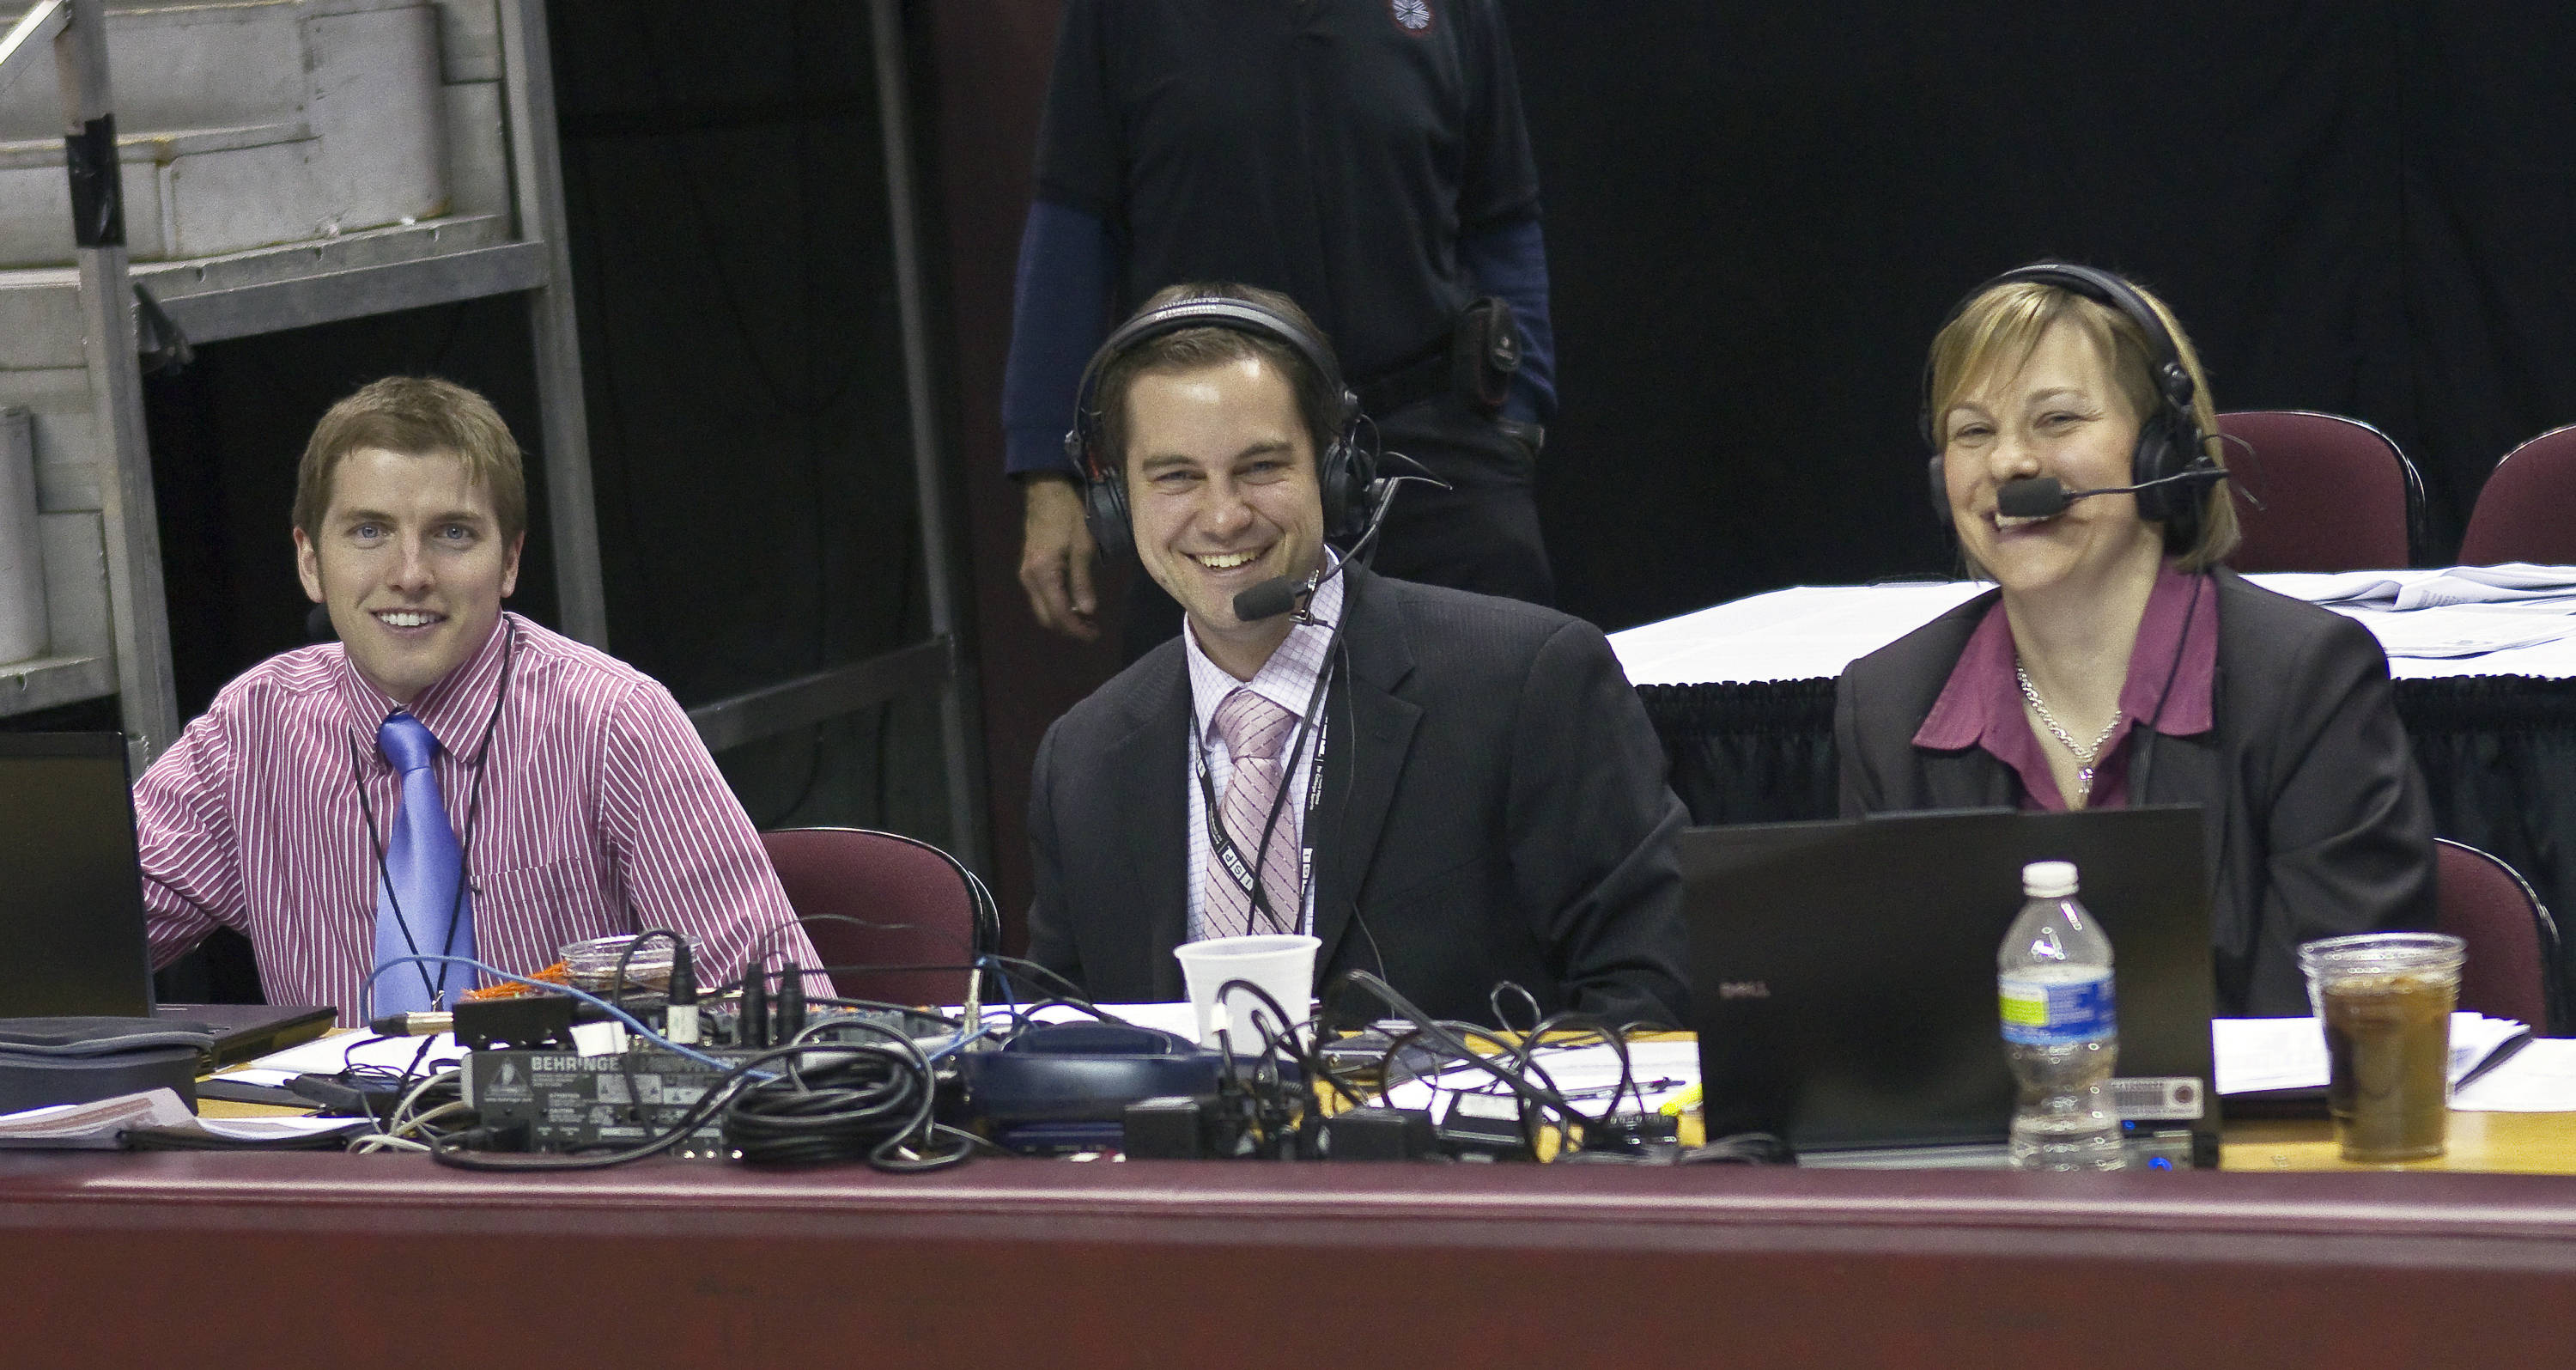 FSU vs Georgia Tech- 02//11/11 - FSU Women's Basketball Sports Information Director Brandon Mellor, FSU's Director of Digital Media Ryan Pensy, FSU Director of Women's Basketball Operations Melissa Bruner